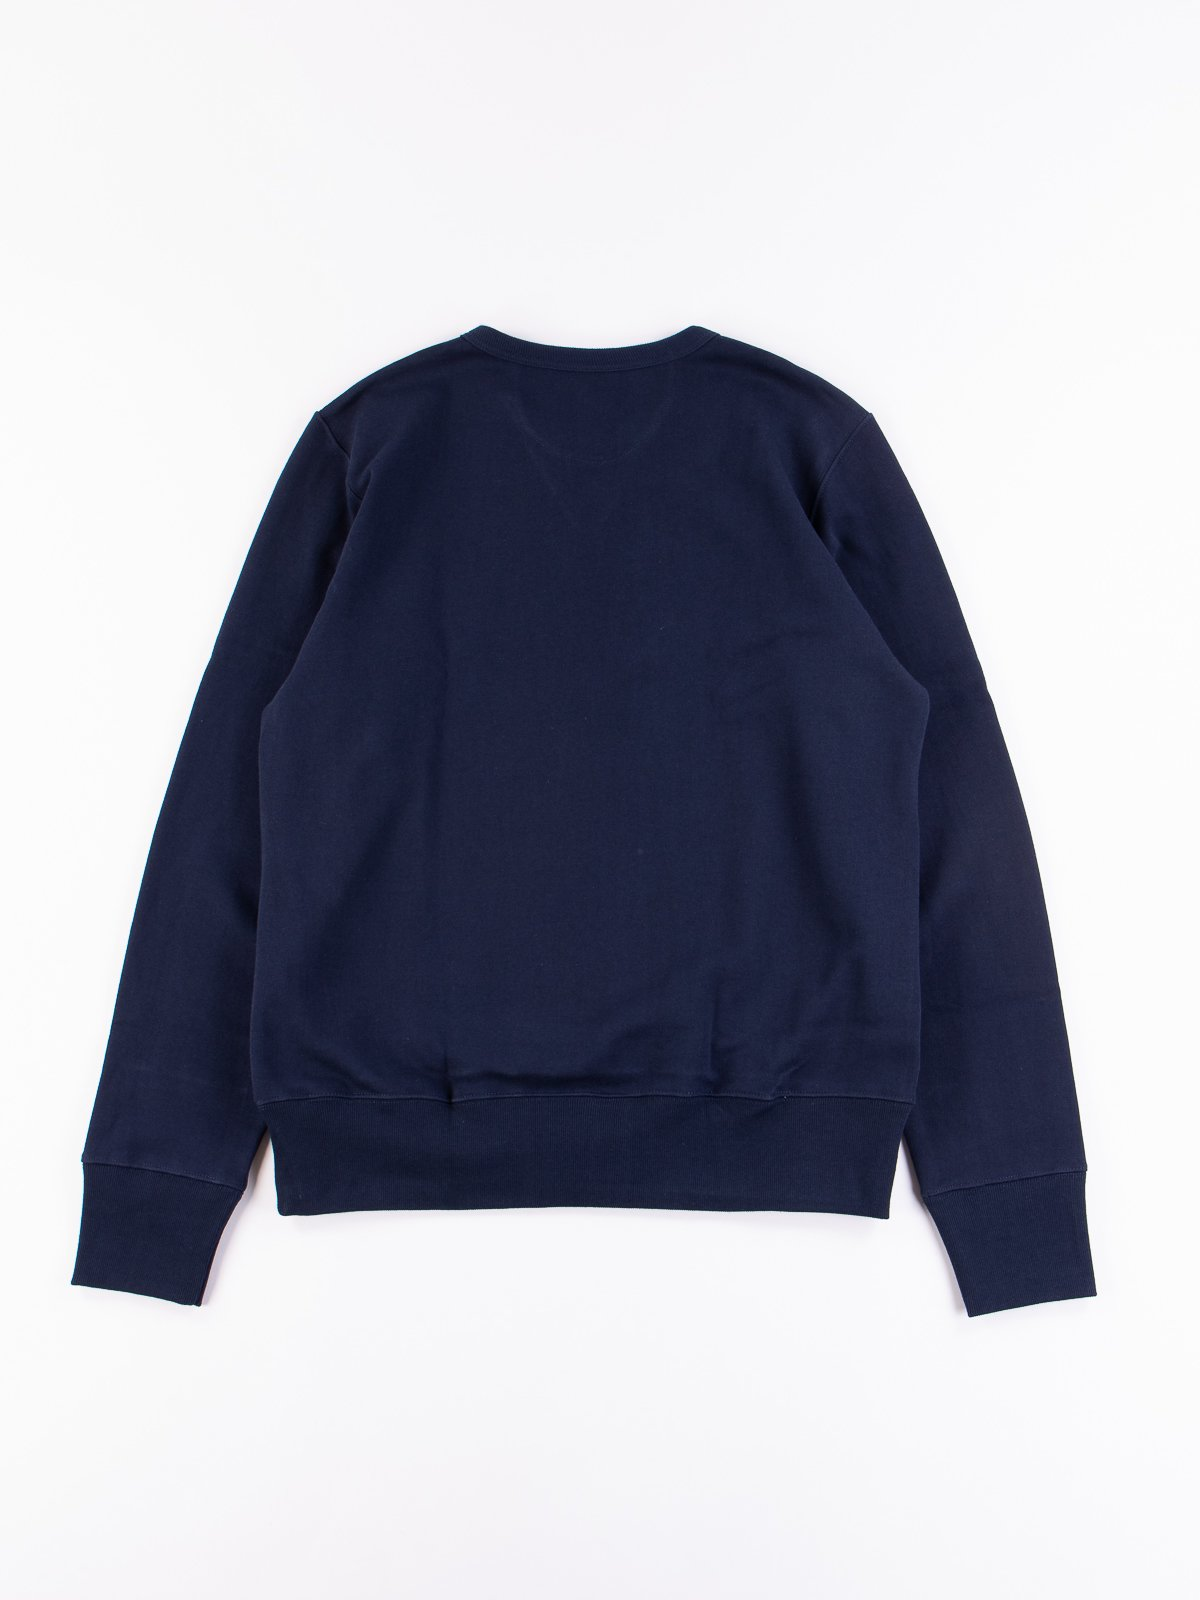 Ink Blue 3S48 Organic Cotton Heavy Sweater - Image 5